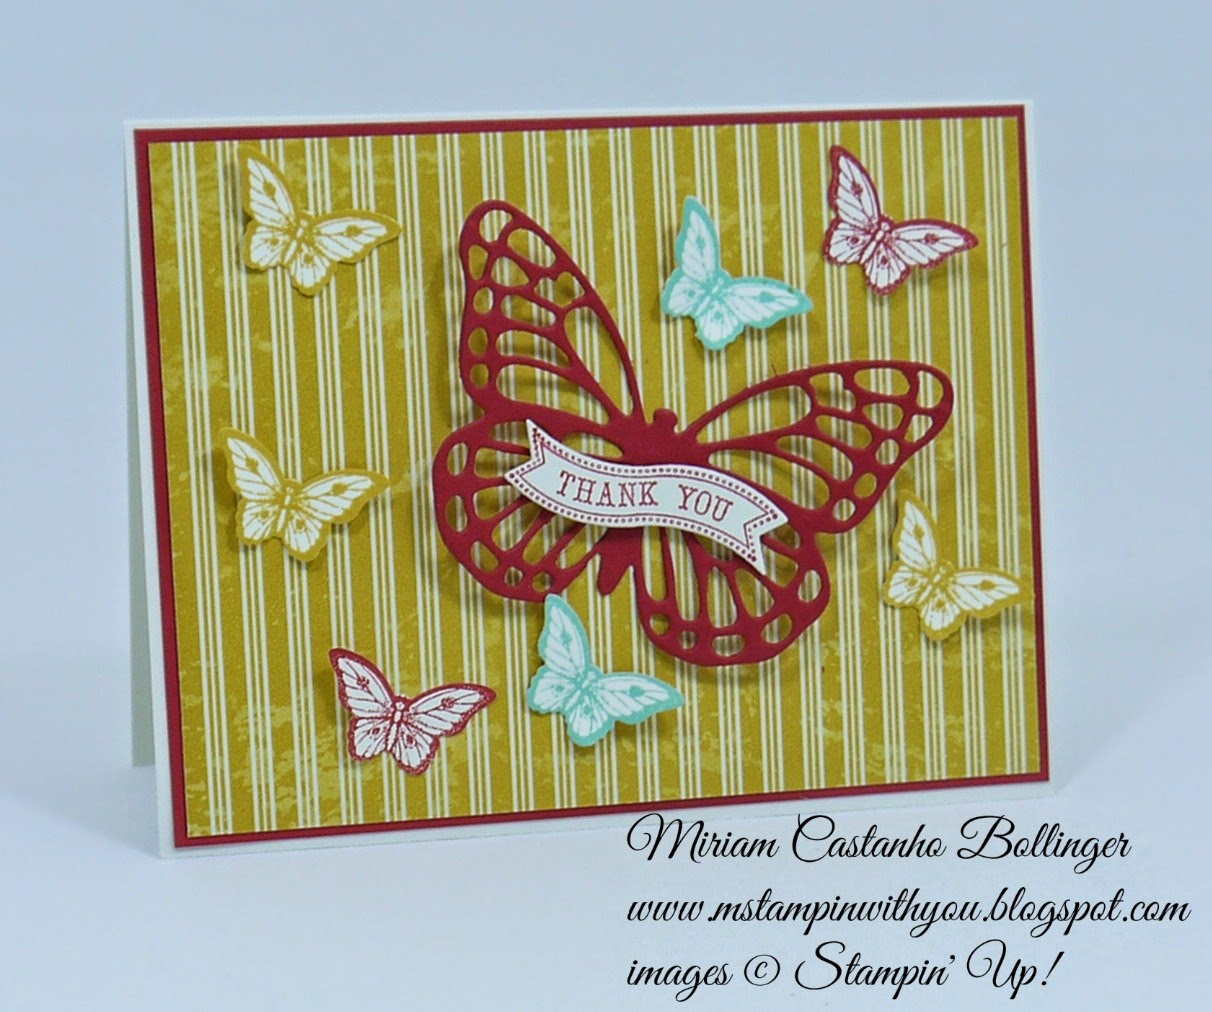 Miriam Castanho Bollinger, #mstampinwithyou, stampin up, demonstrator, dsc, thank you, flashback dsp, papillon potpourri, itty bitty banners, bitty butterfly, big shot, bitty banners, butterflies thinlits die, su